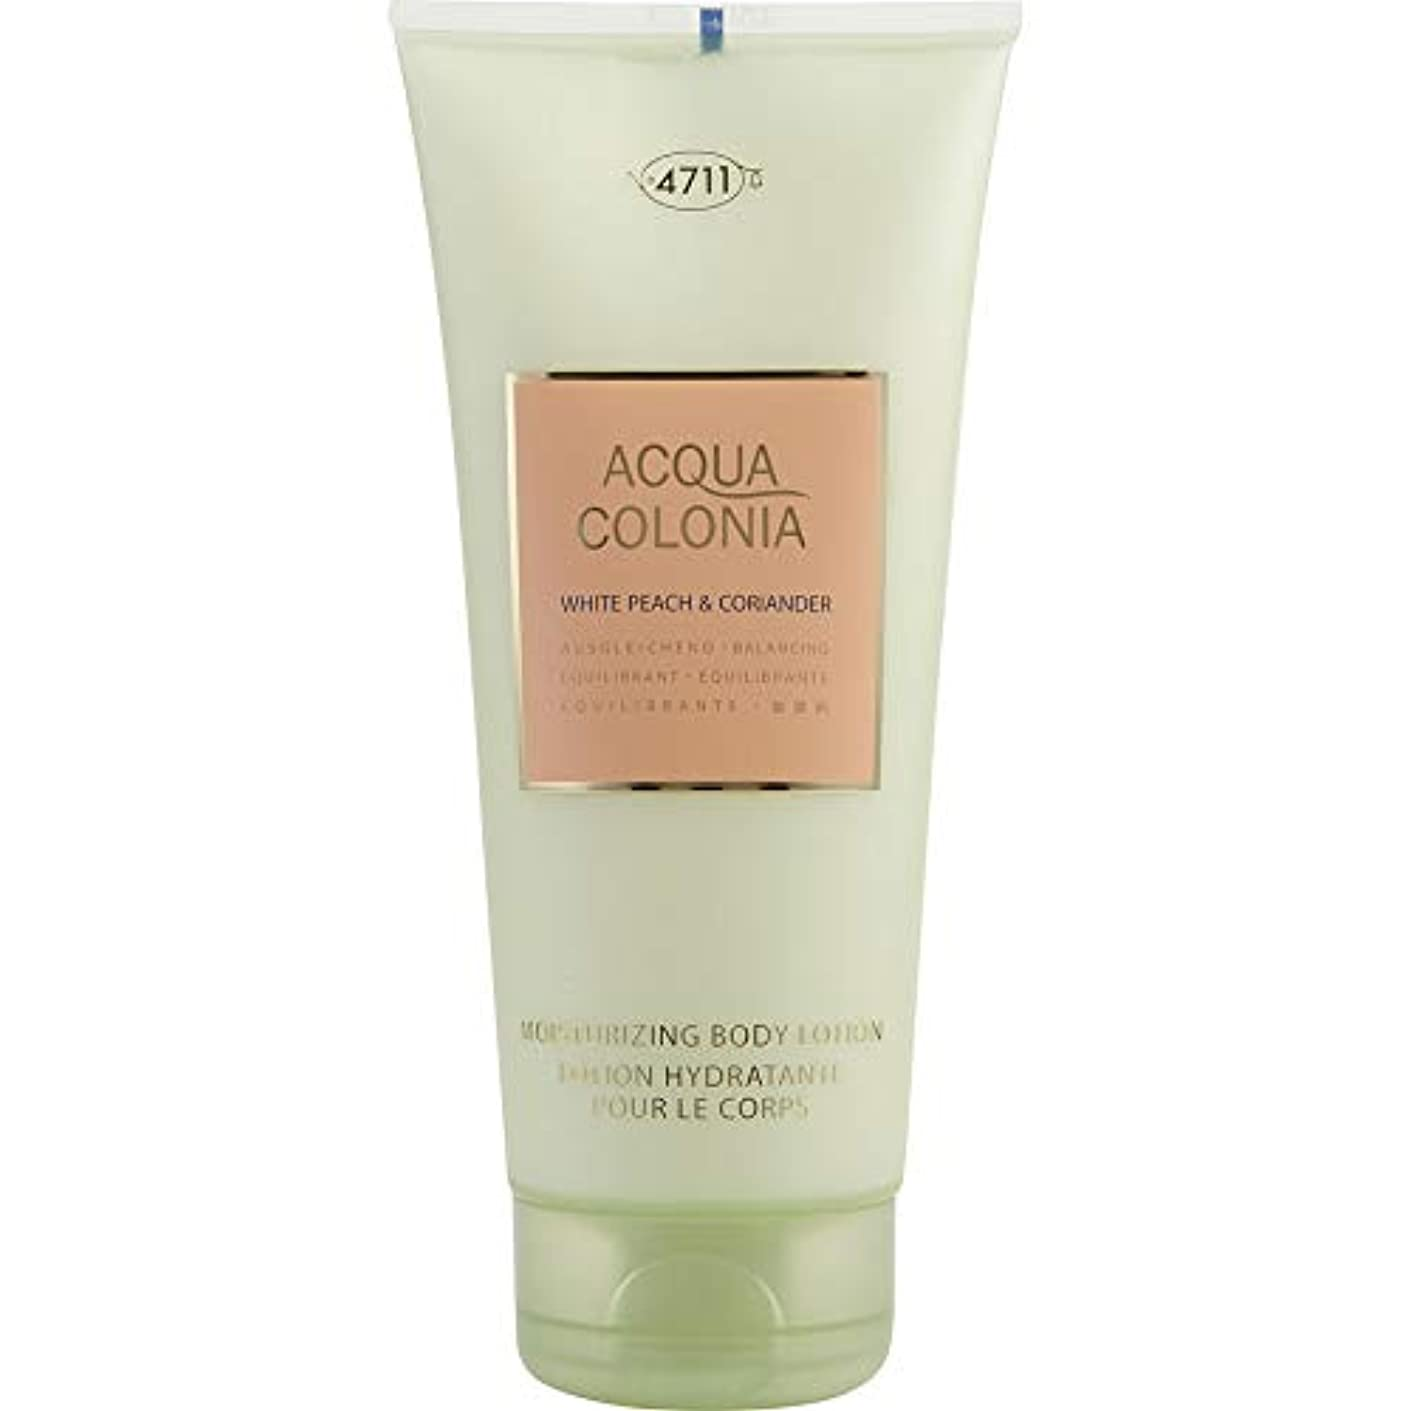 感謝する栄光すり4711 Acqua Colonia White Peach & Coriander Moisturizing Body Lotion 200ml/6.8oz並行輸入品